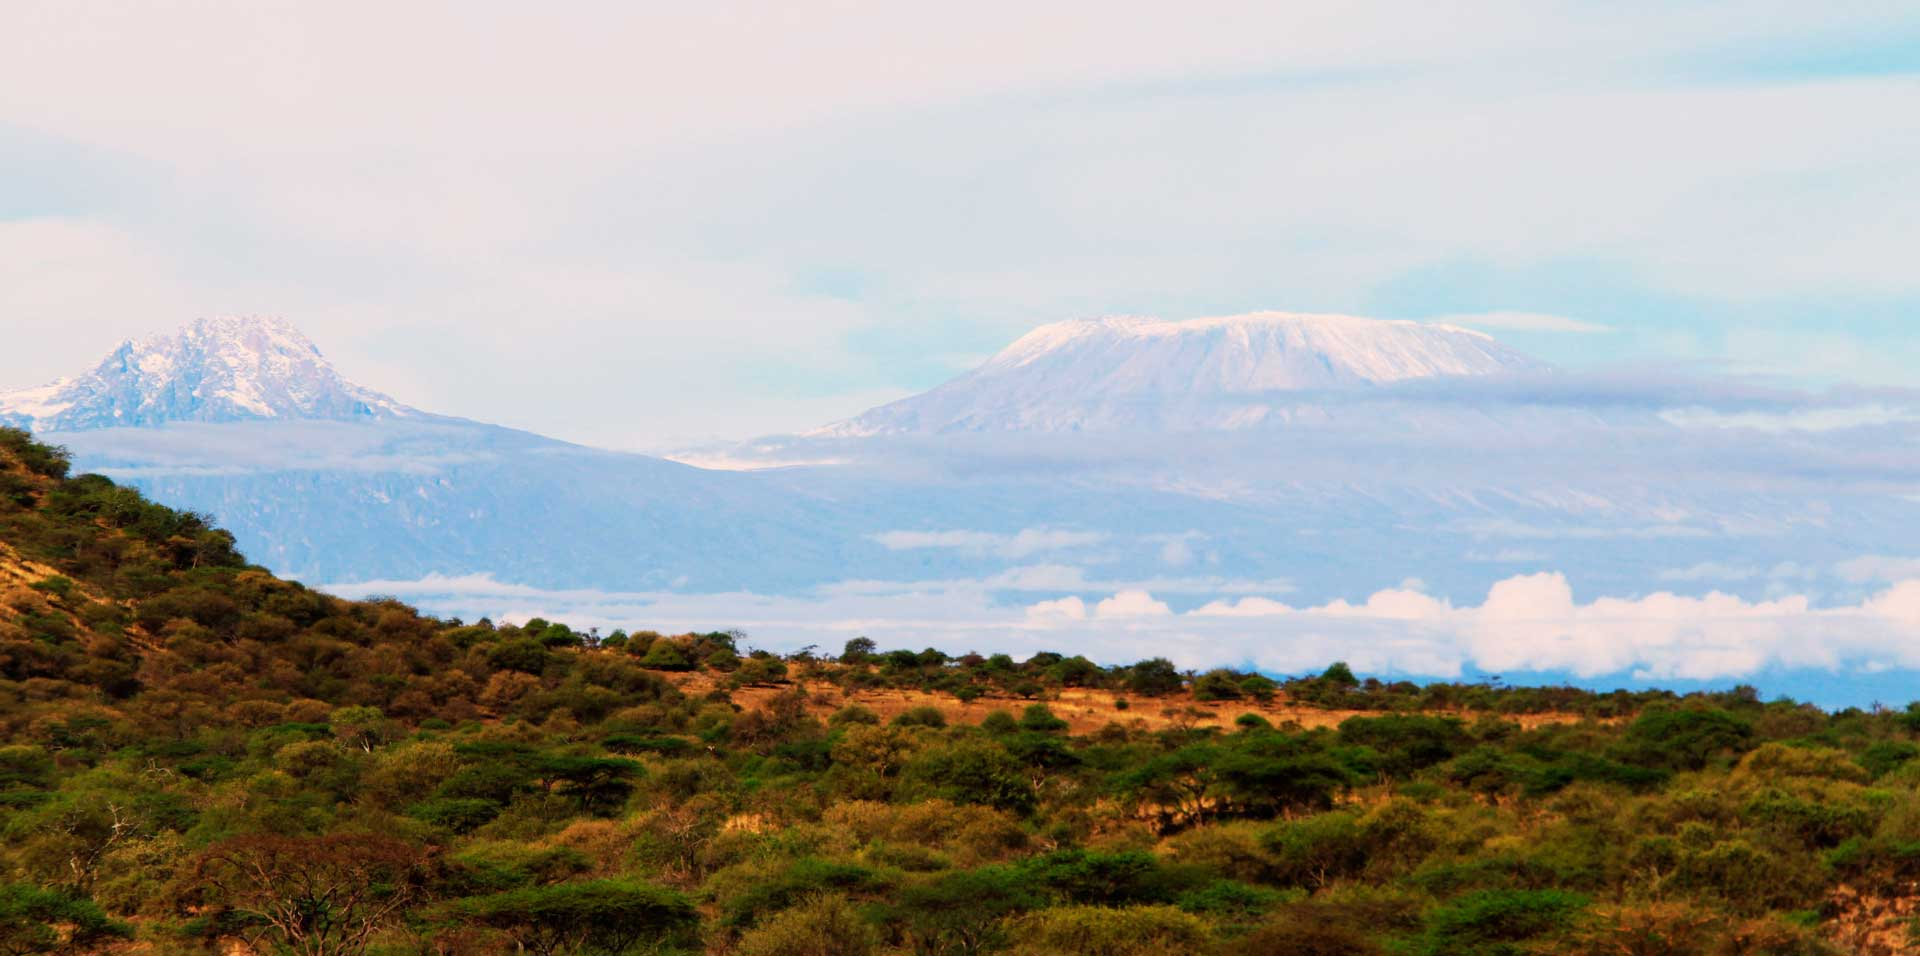 View over the African Plain with Mount Kilimanjaro in the background